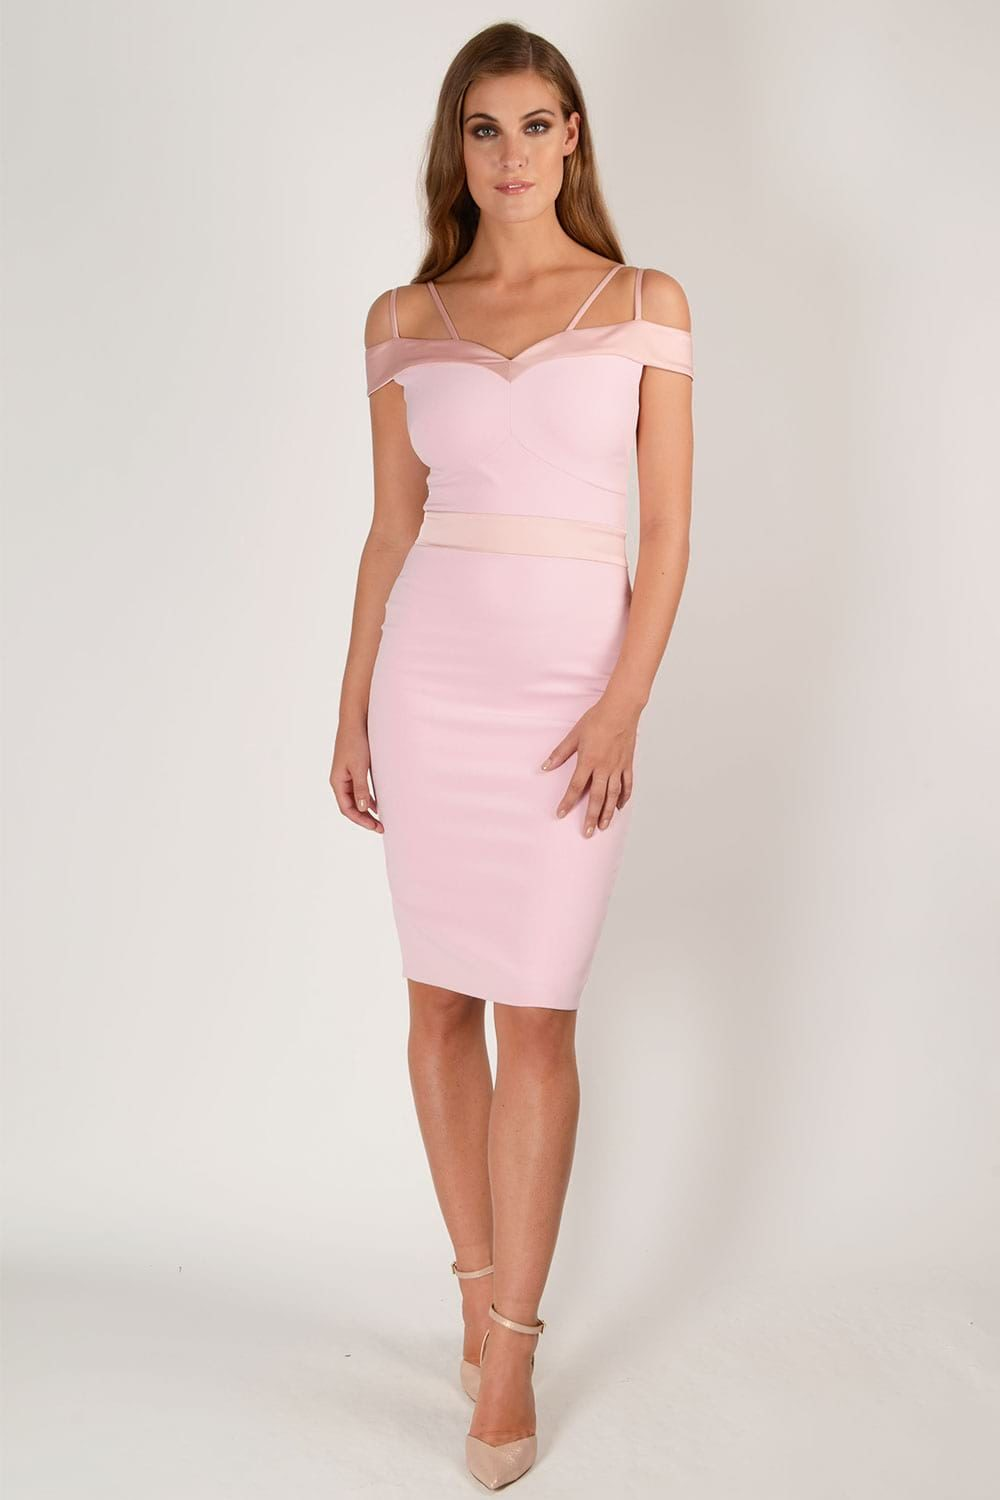 Hybrid Fashion Kristen 1195 Bodycon Dress with Double Straps